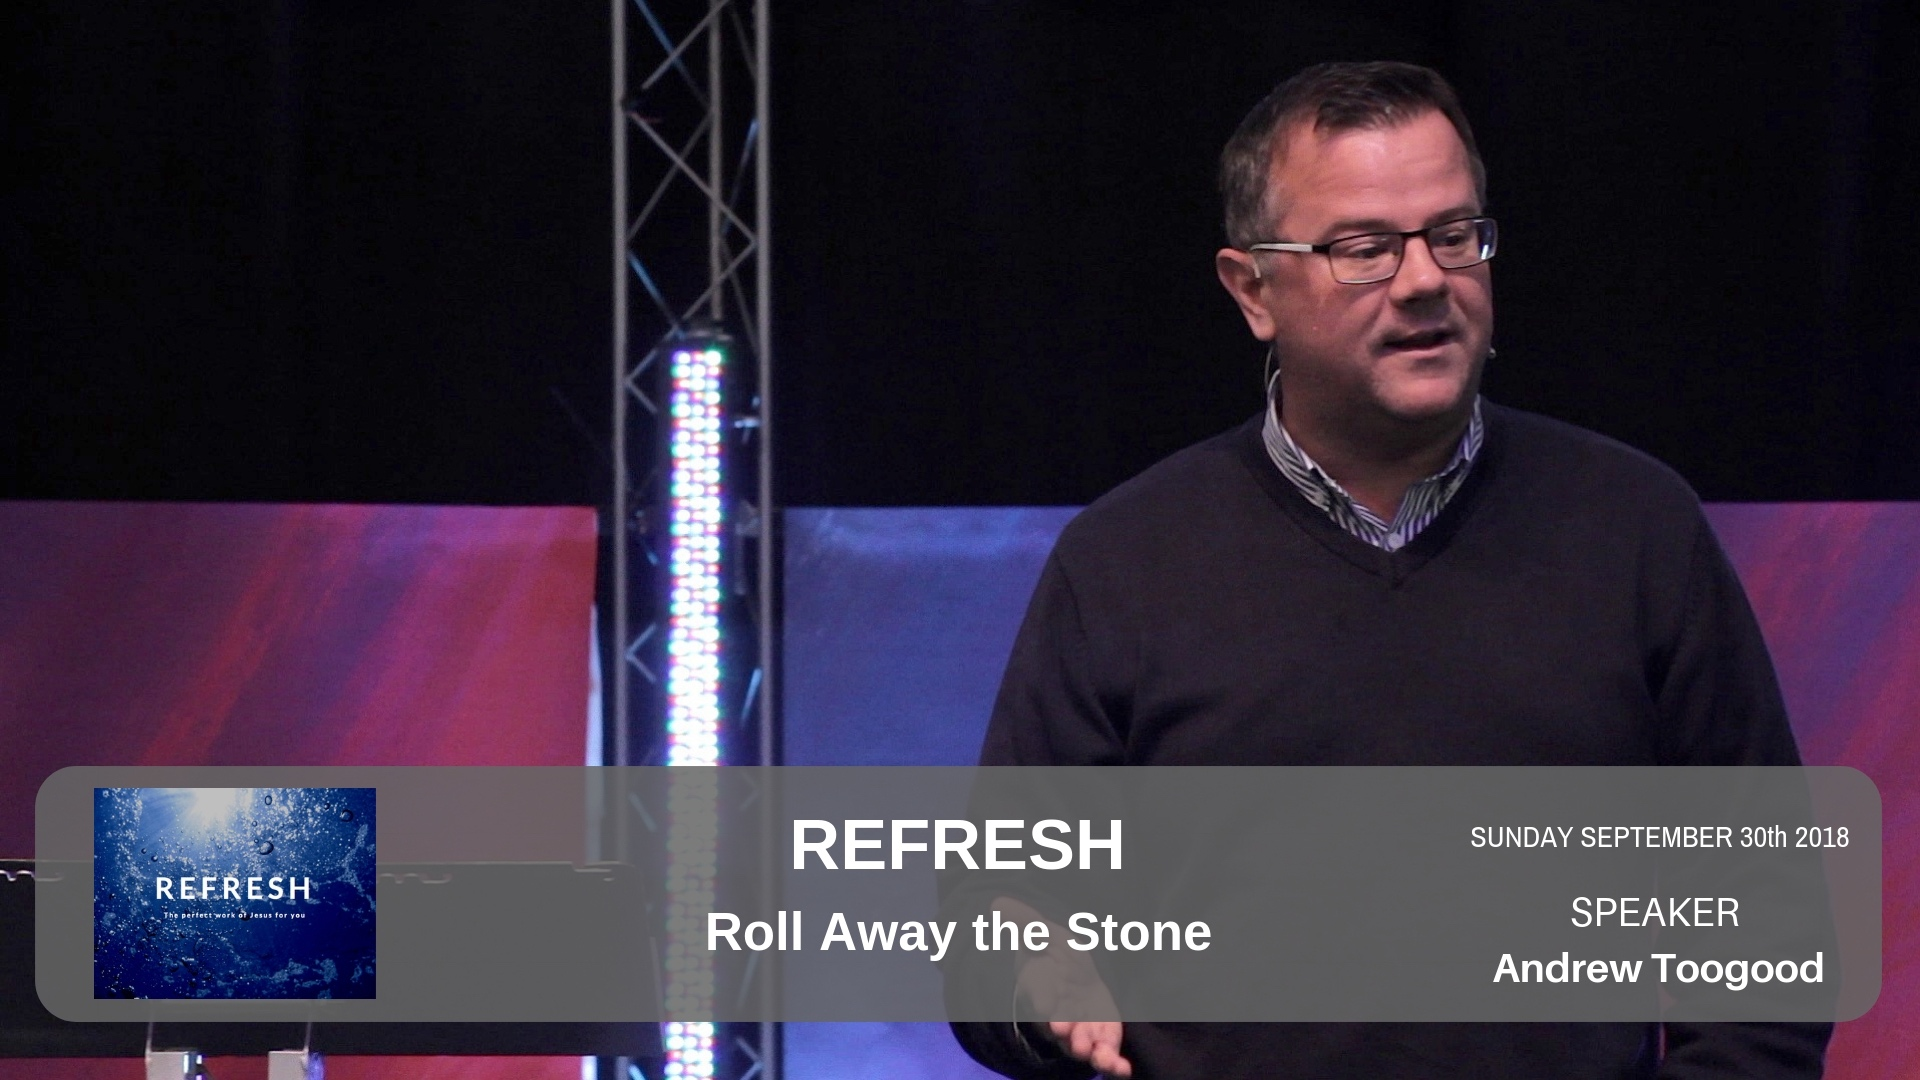 Refresh - Roll Away the Stone